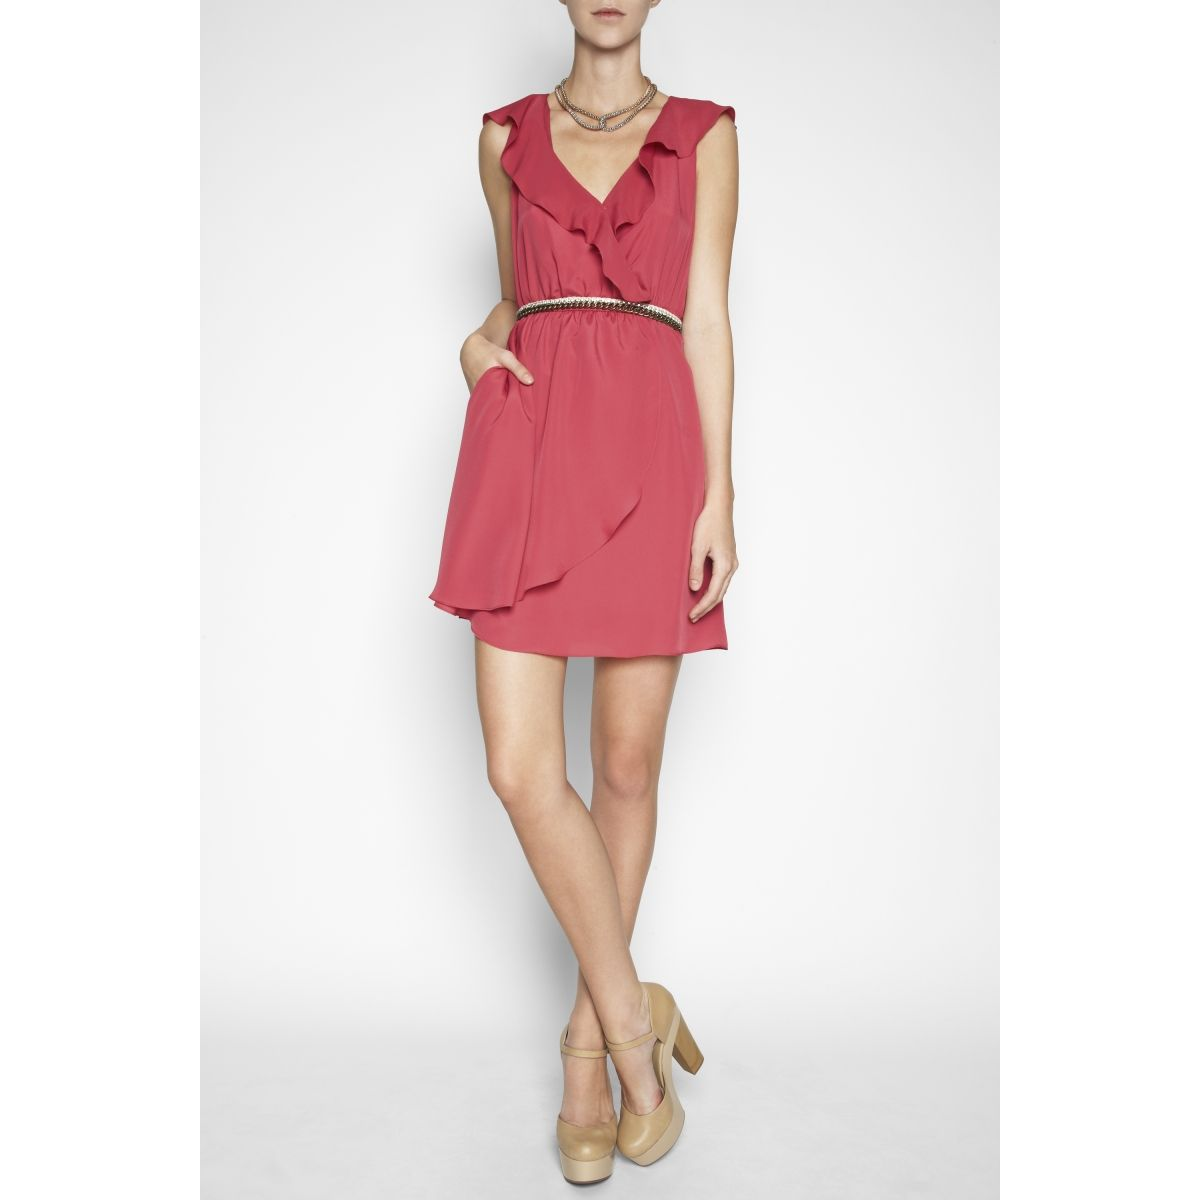 BCBG dresses are simple and totally me | My Style | Pinterest